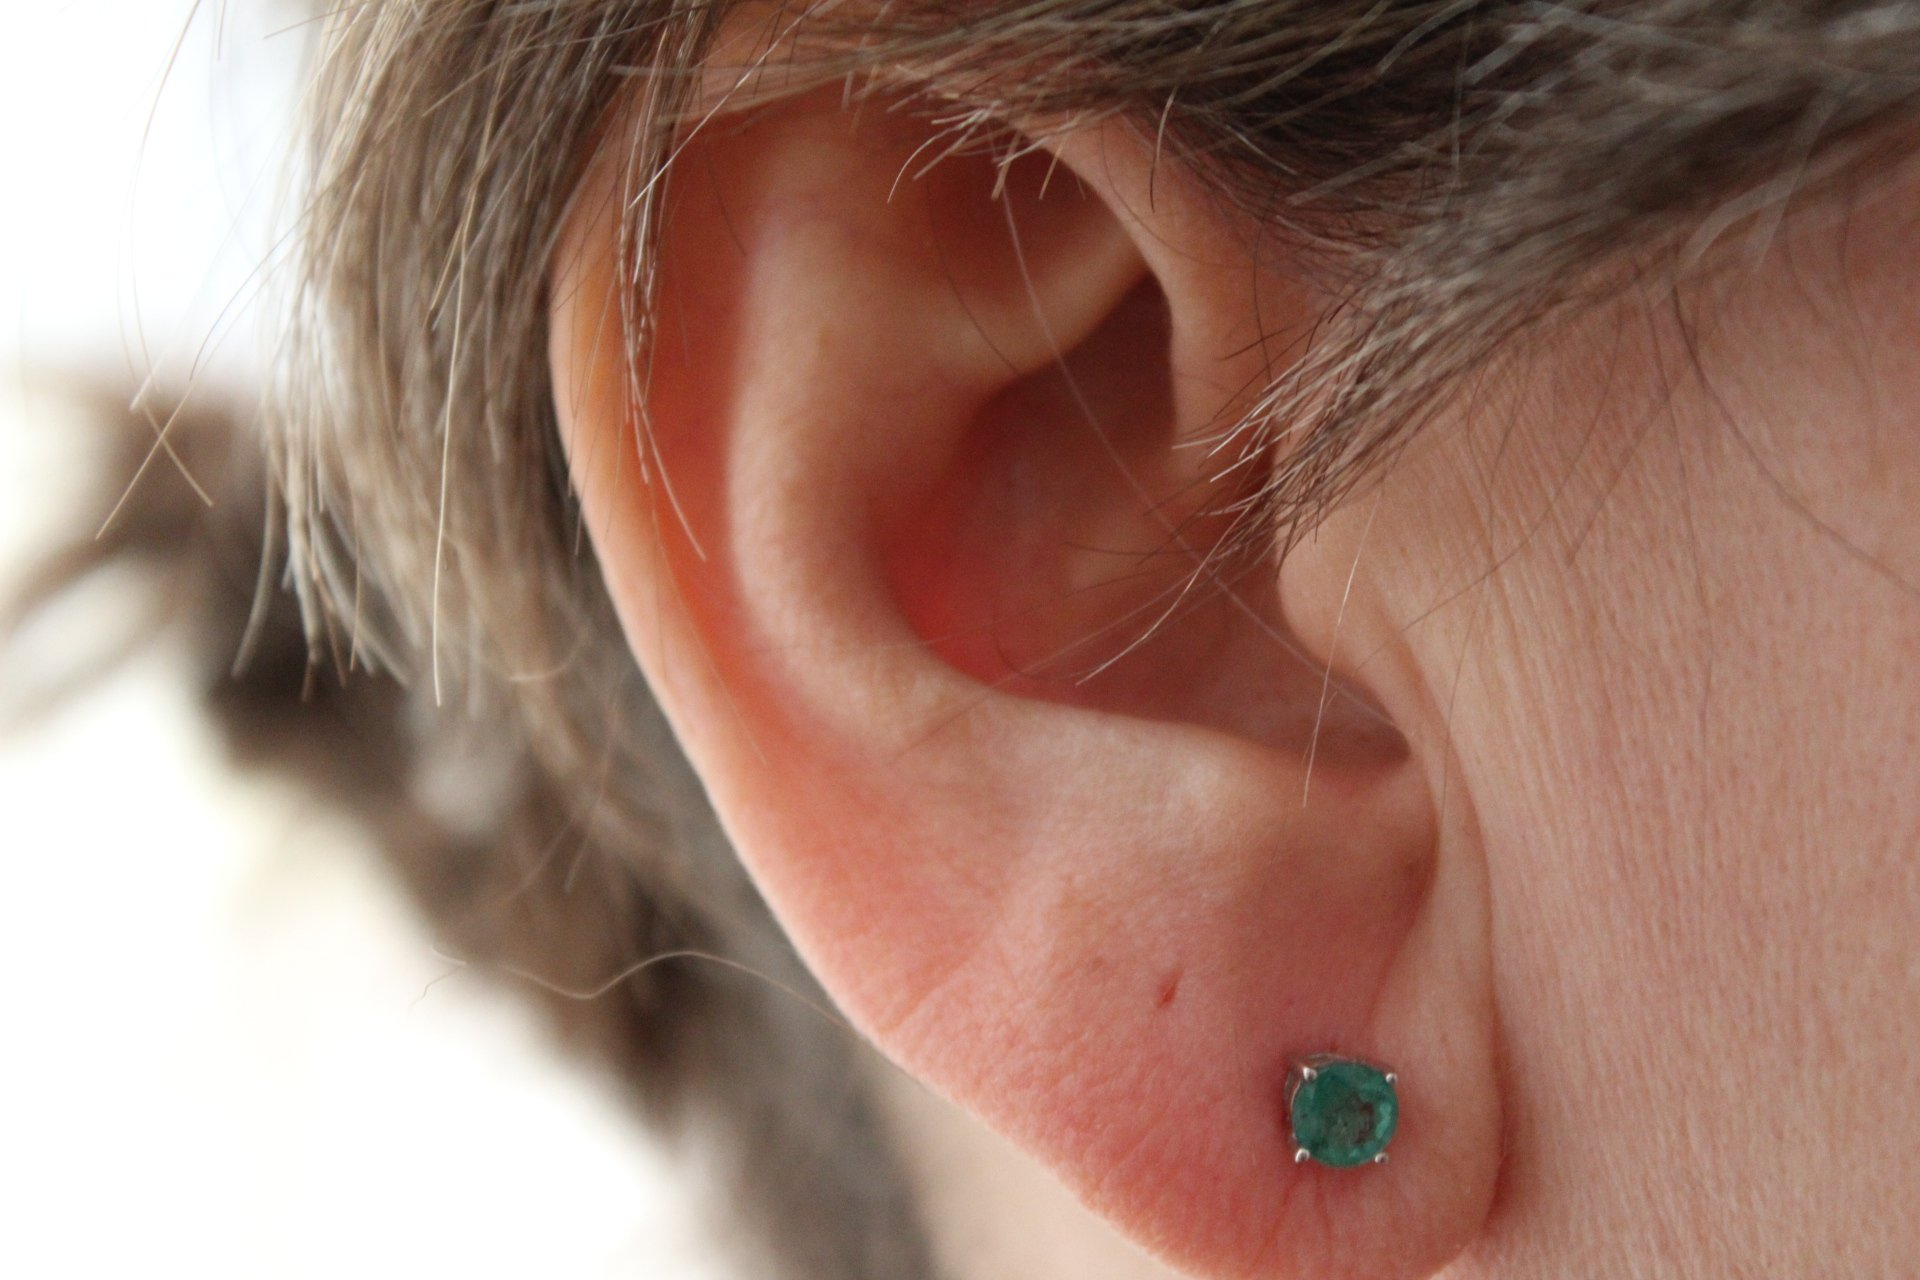 14K Solid White Gold Round 5.0mm Genuine AAA Emerald=1.00 ct. Stud Earrings by JewelMode (Image #3)